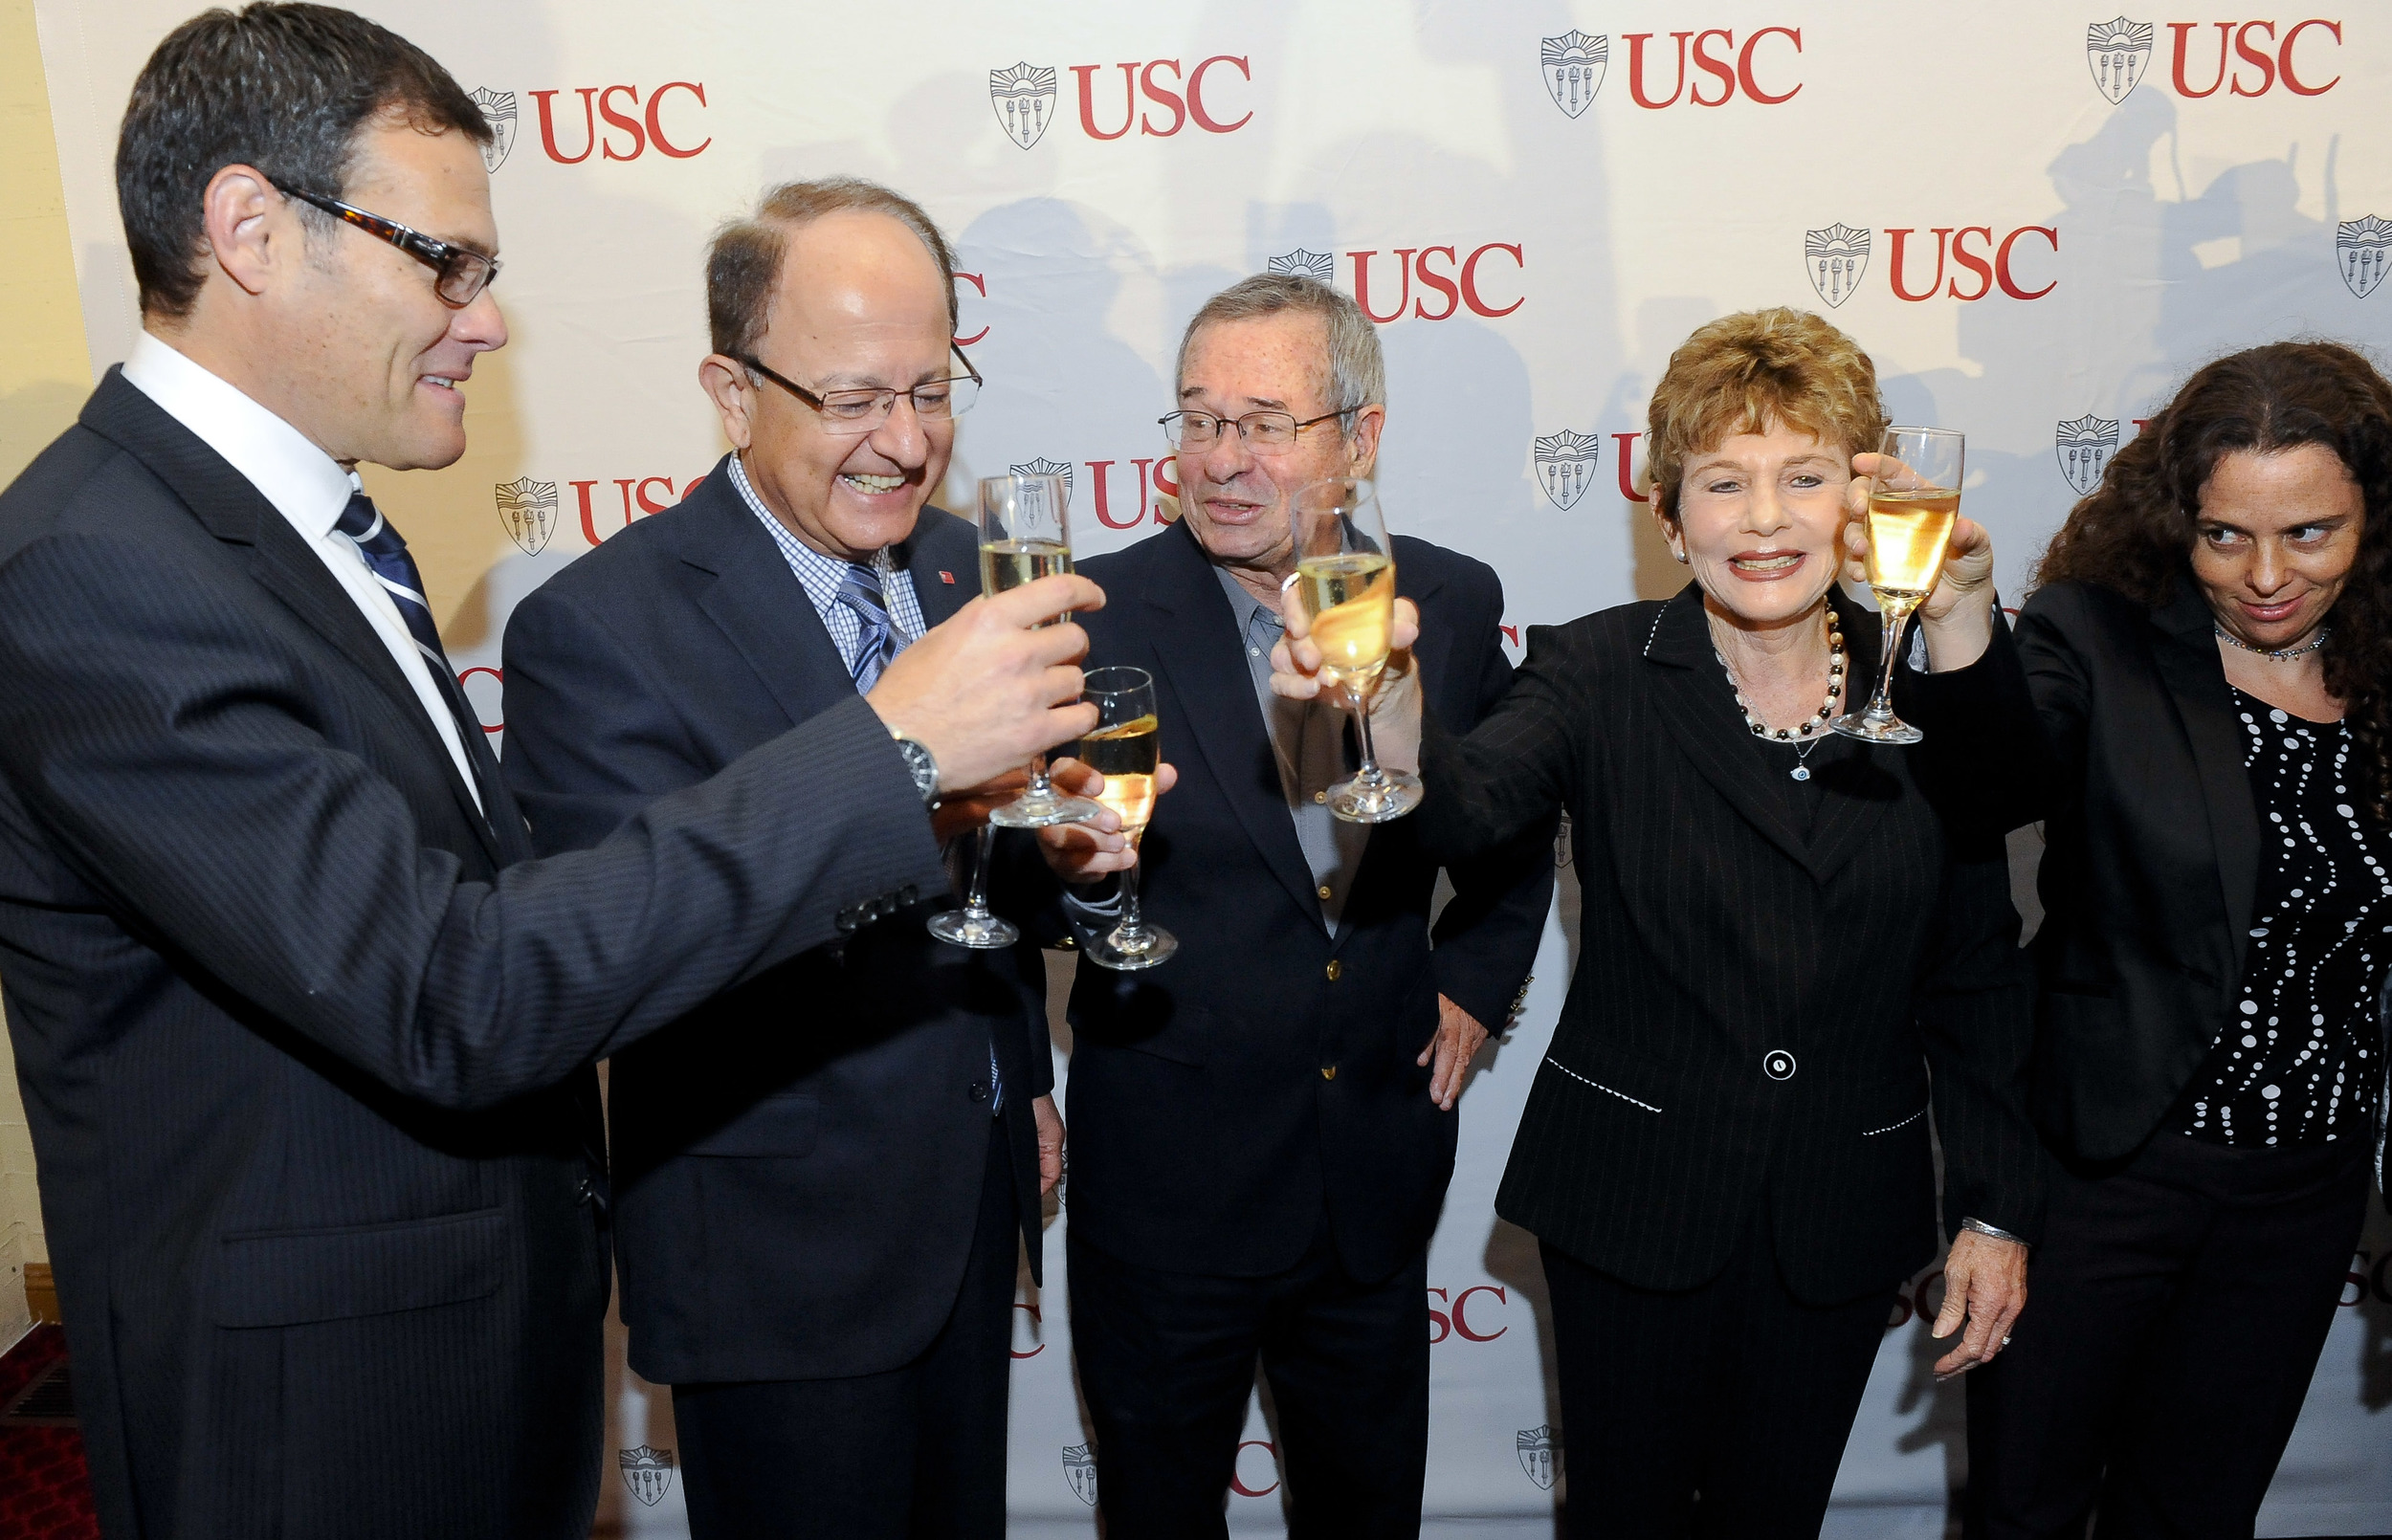 Click photo to download. Caption: Making a toast on Oct. 9 are (from left to right) Israeli Consul General David Siegel, University of Southern California (USC) President C. L. Max Nikias, 2013 Nobel Prize winner in chemistry USC Distinguished Professor Arieh Warshel, Warshe's wife Tami, and Warshel's daughter Yael. Credit: USC Photo/Gus Ruelas.